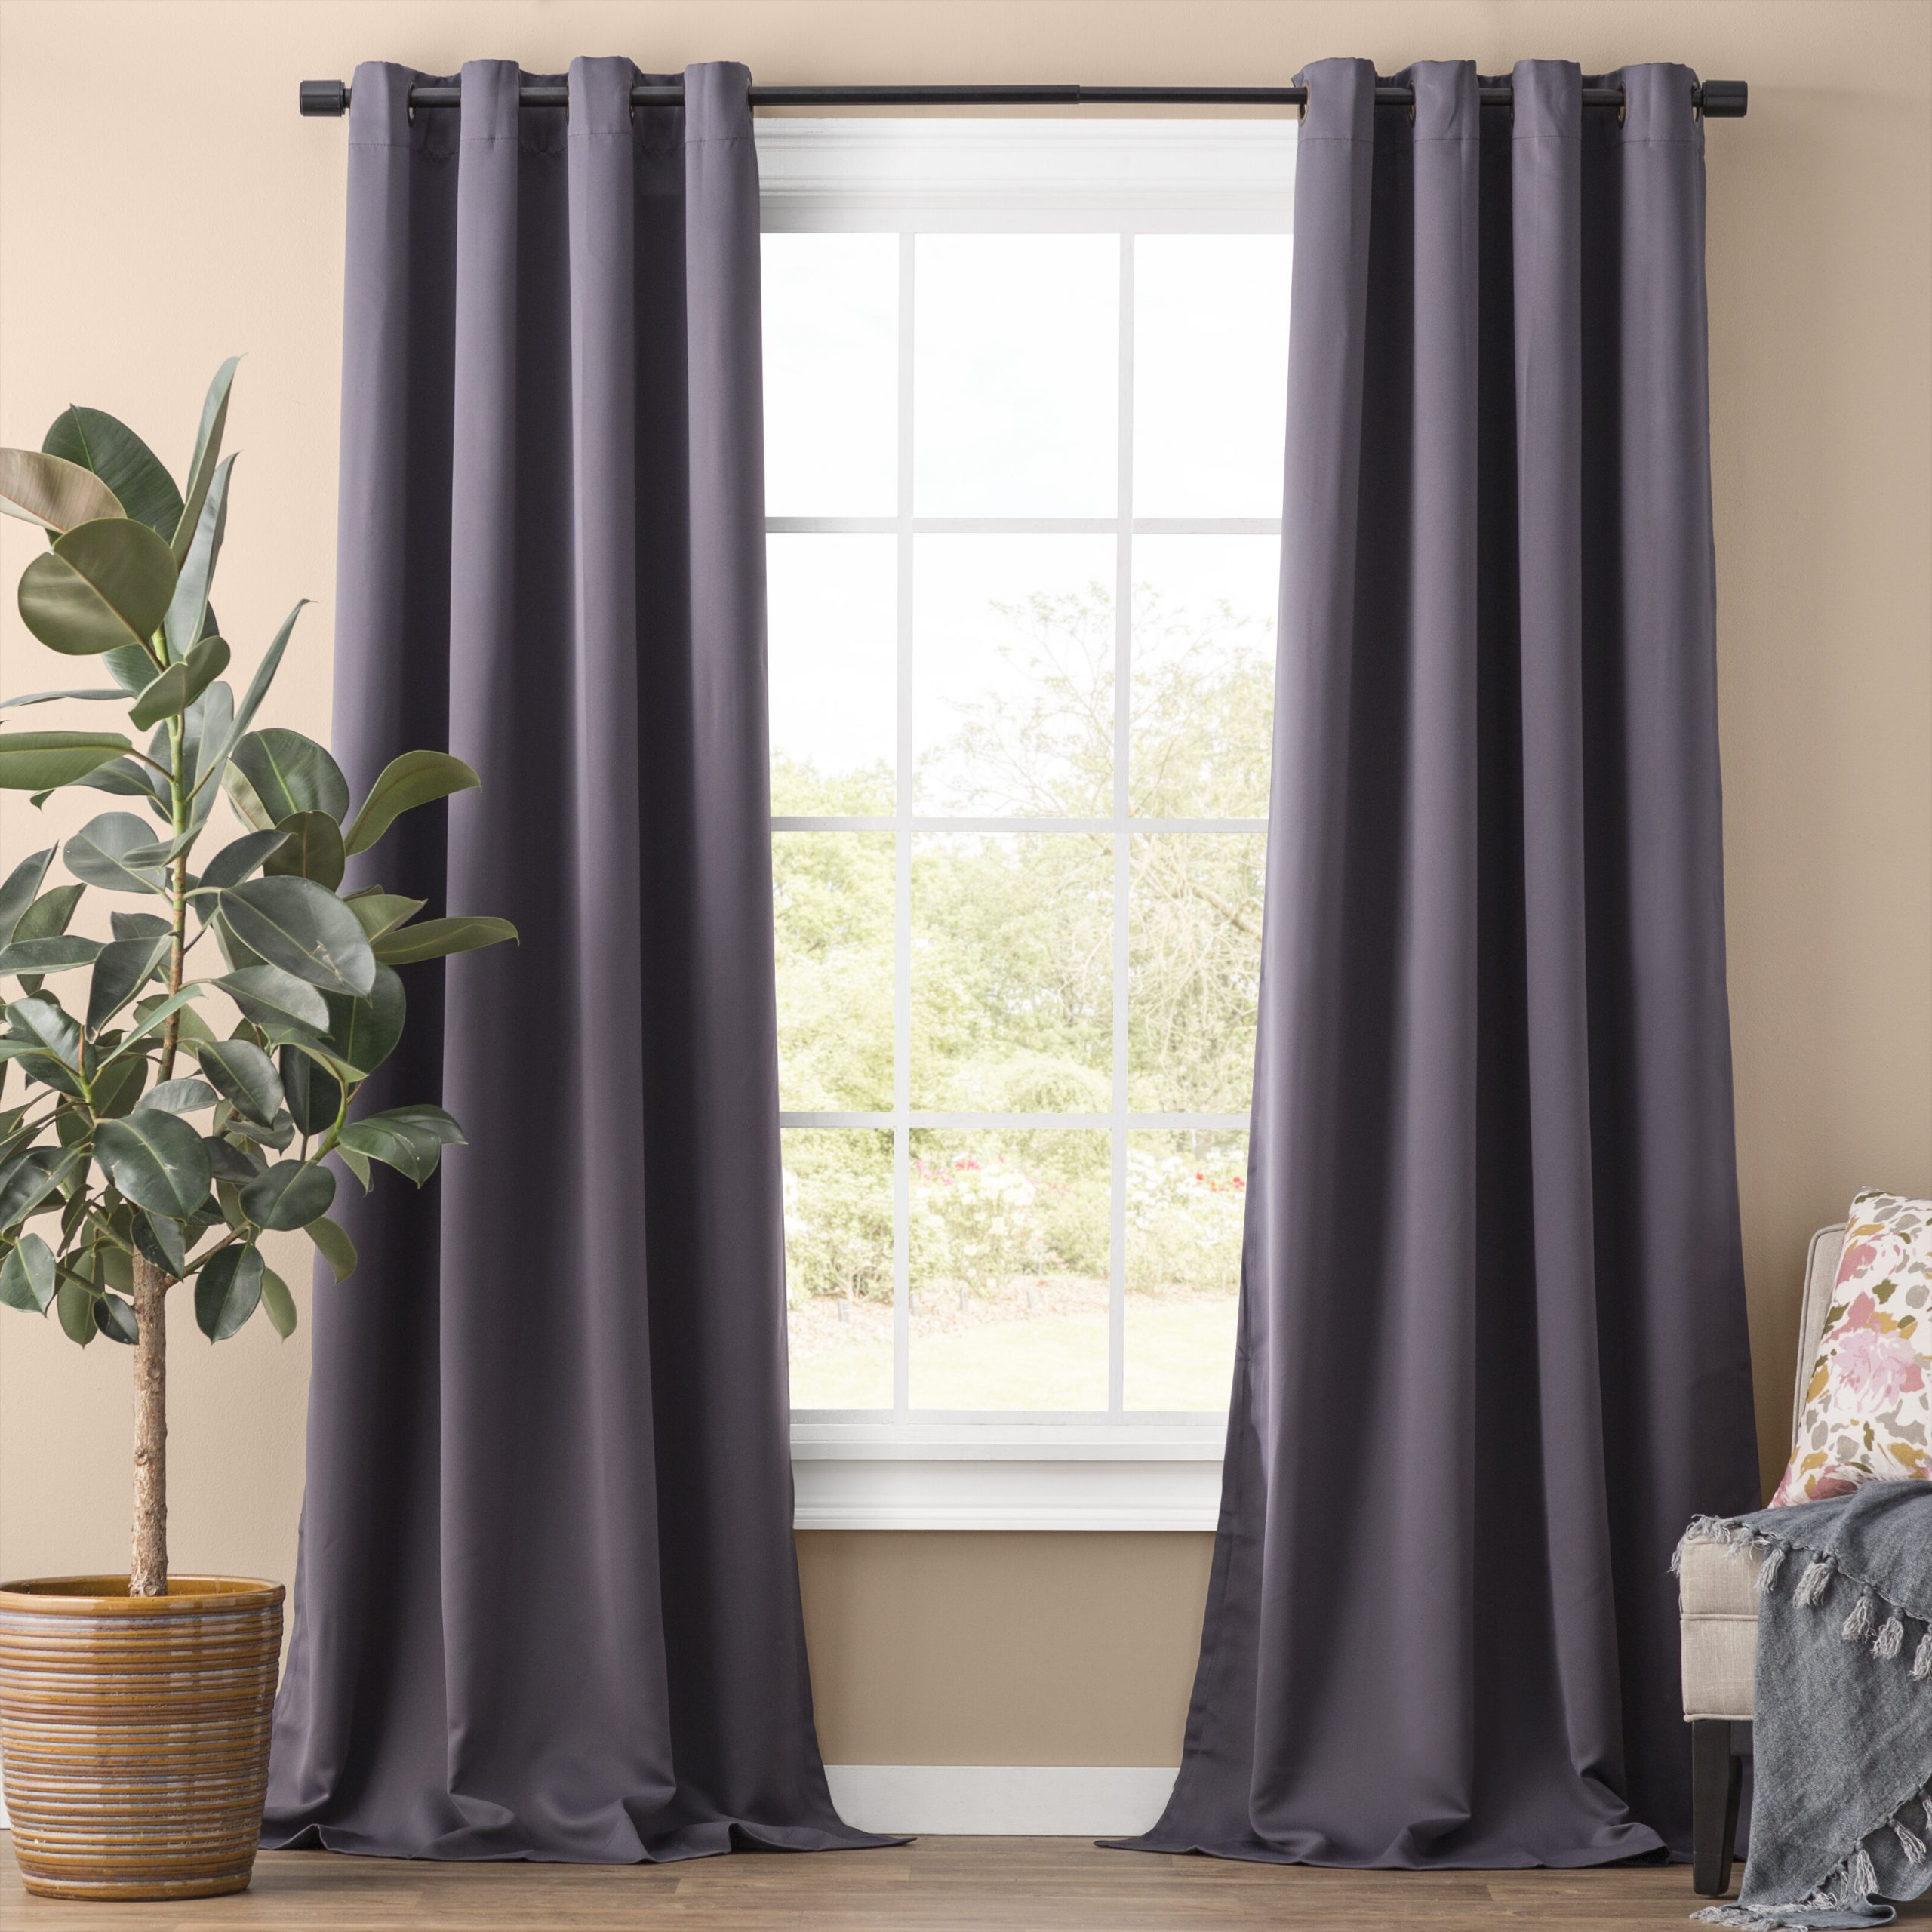 Most Recently Released Solid Blackout Thermal Grommet Curtain Panels Throughout Cooper Textured Thermal Insulated Grommet Curtain Panels (View 15 of 20)